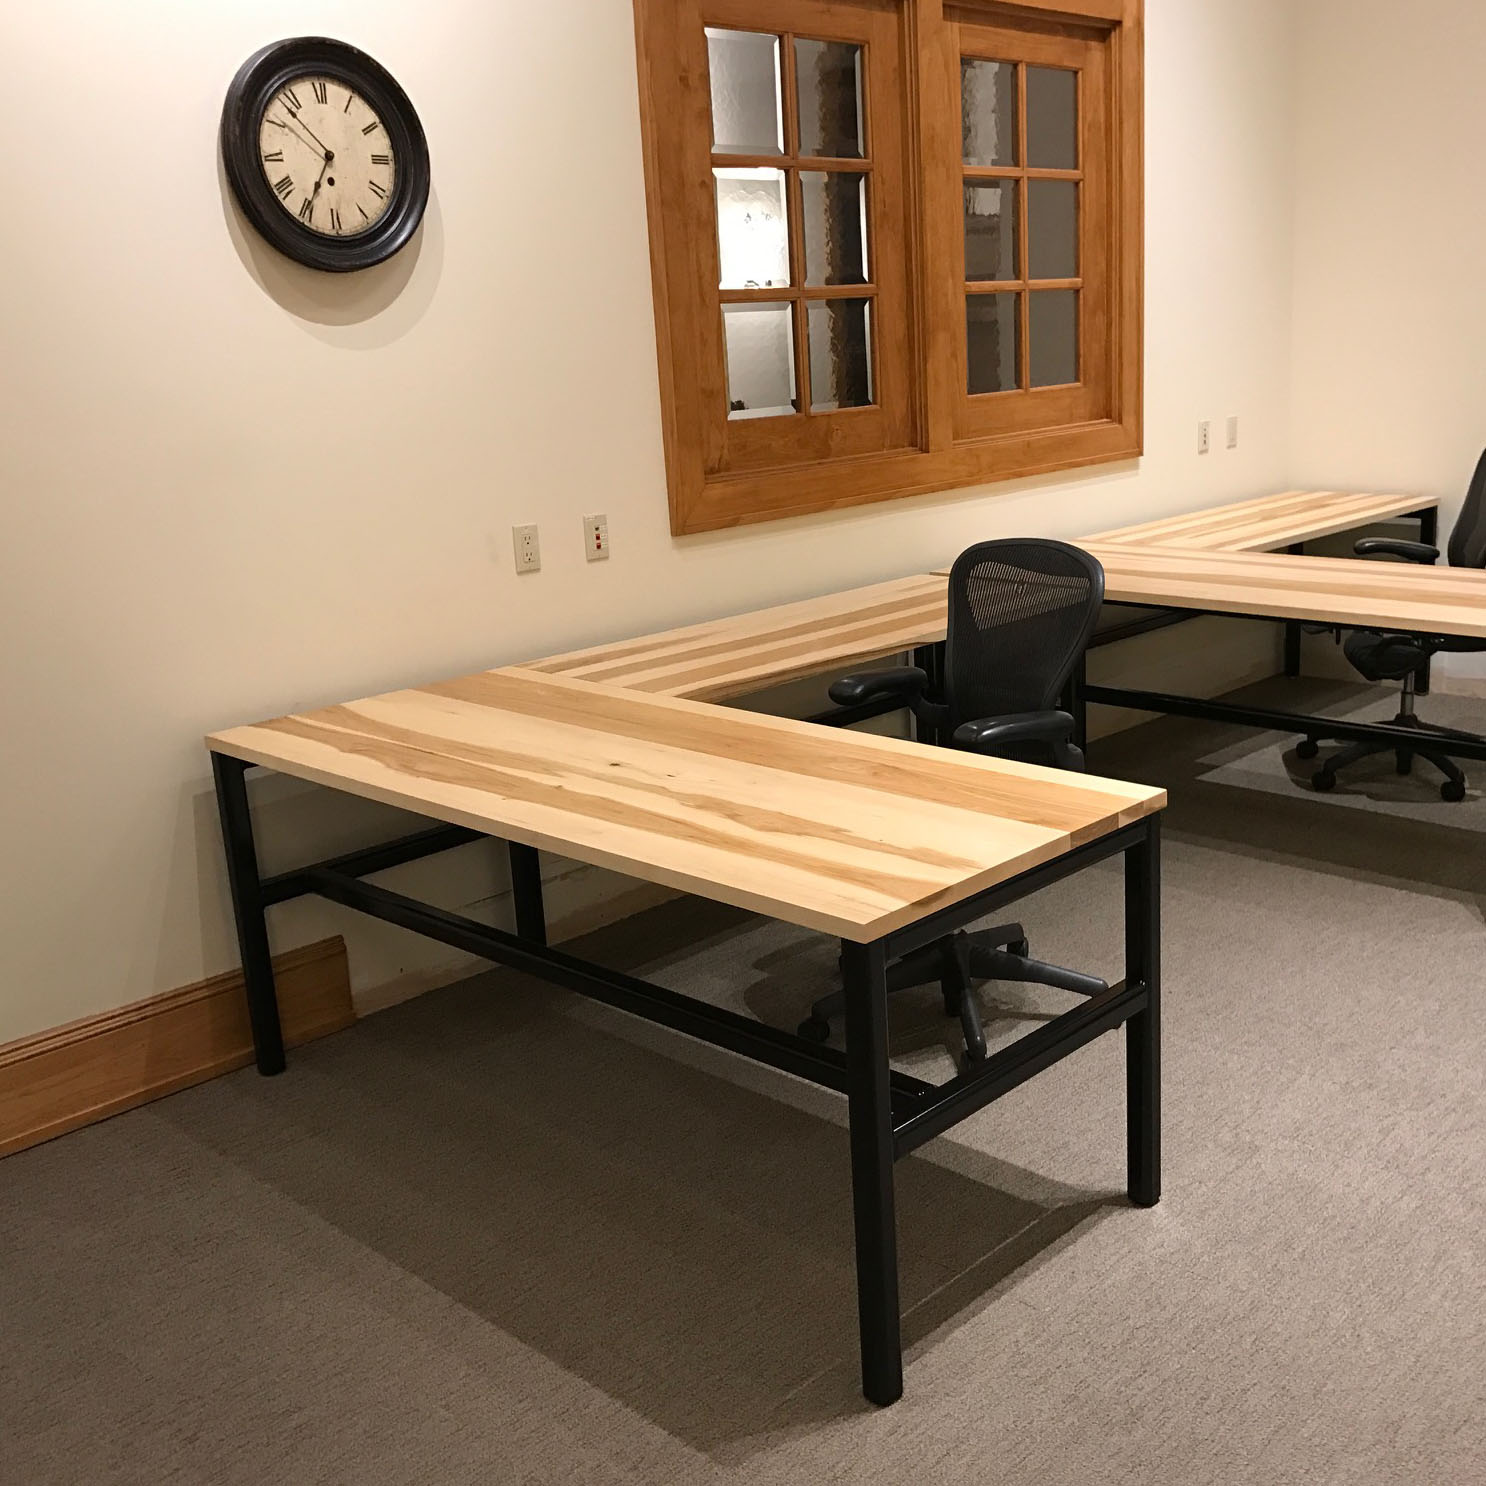 Solid Wood Tables with Style - When a local ice cream company contacted us looking to add character to their office space, solid wood desks immediately came to mind.